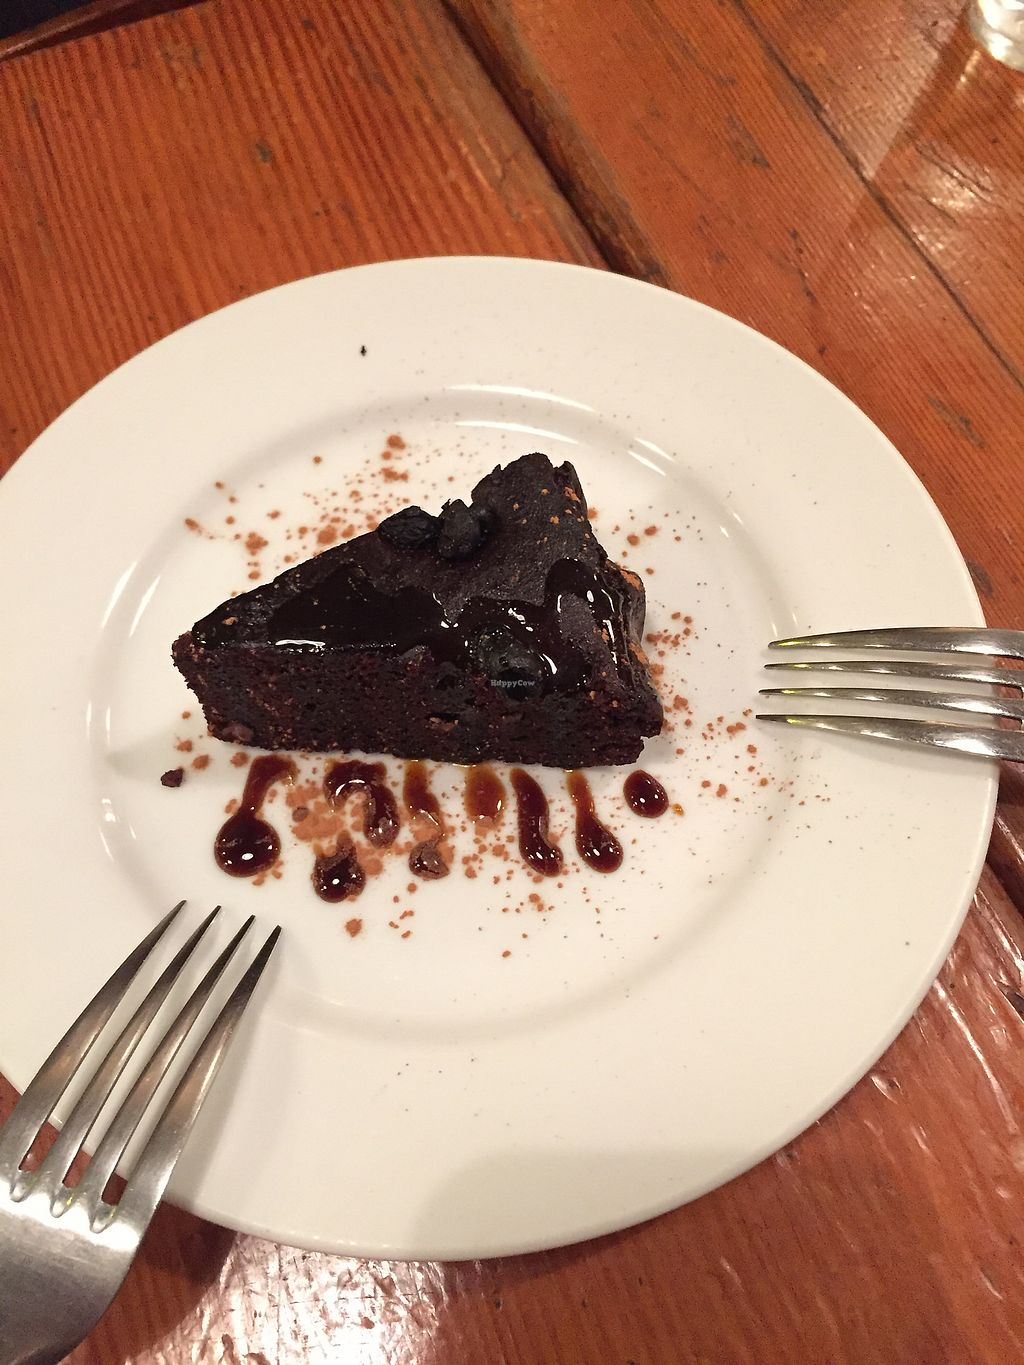 """Photo of Mominoki House  by <a href=""""/members/profile/roosaloo"""">roosaloo</a> <br/>chocolate cake <br/> July 6, 2017  - <a href='/contact/abuse/image/2935/277043'>Report</a>"""